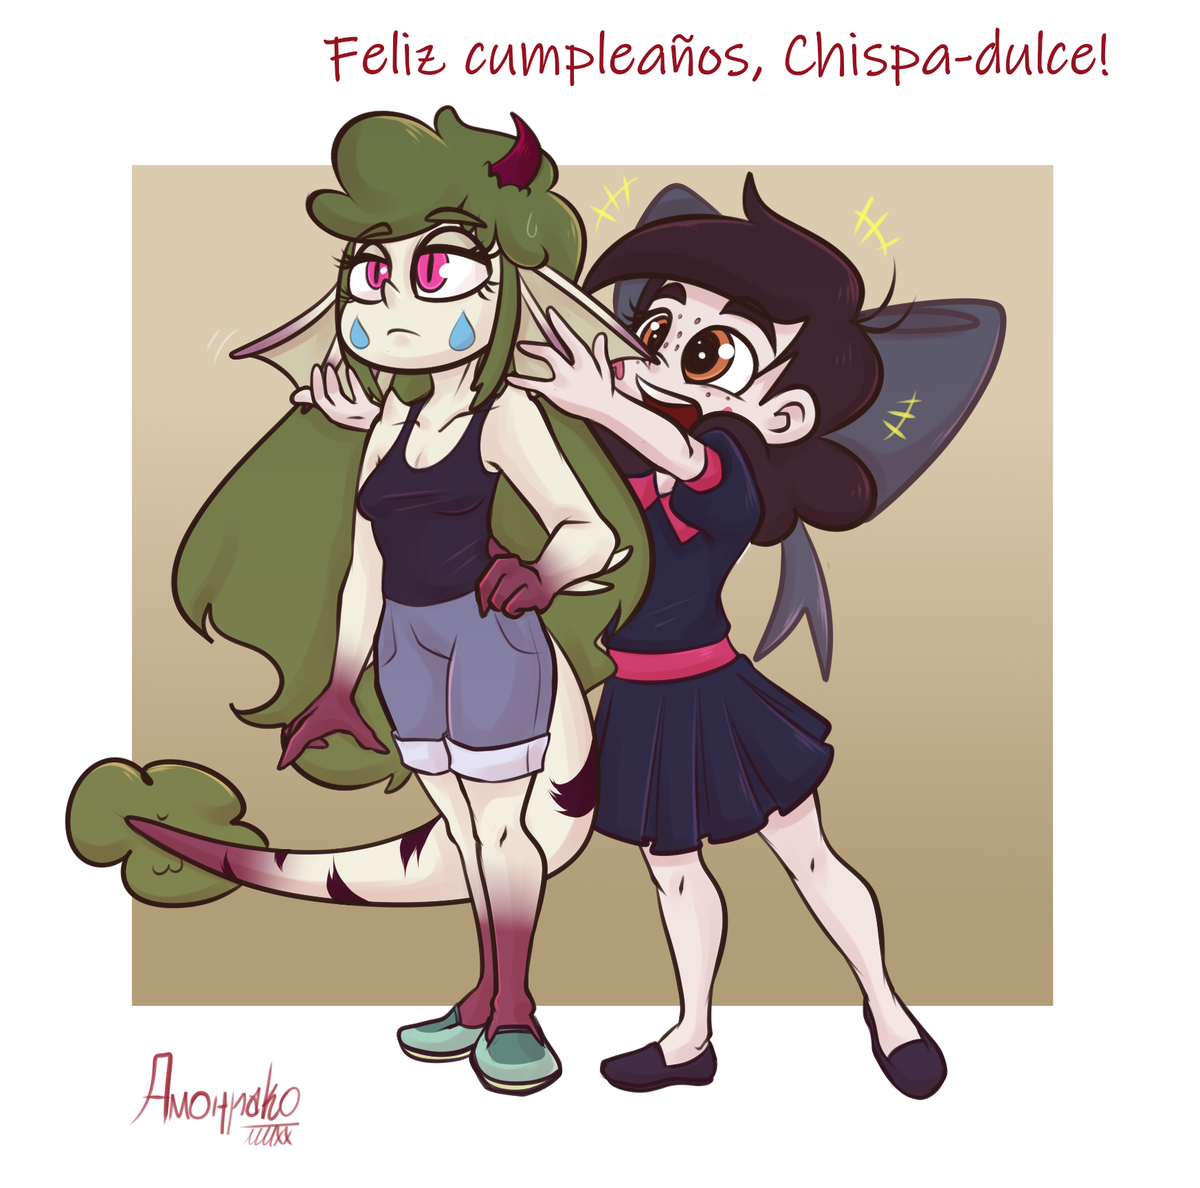 Gift art for my friend Chispa-Dulce at Instagram: https://t.co/hbAHT10D4n  Her Meteora/Rasticore OC Lavanda and my Callista thinking her earflaps are the cutest thing ever.  Check her art and be nice to her. Happy bday! https://t.co/3A7qWfSKfD